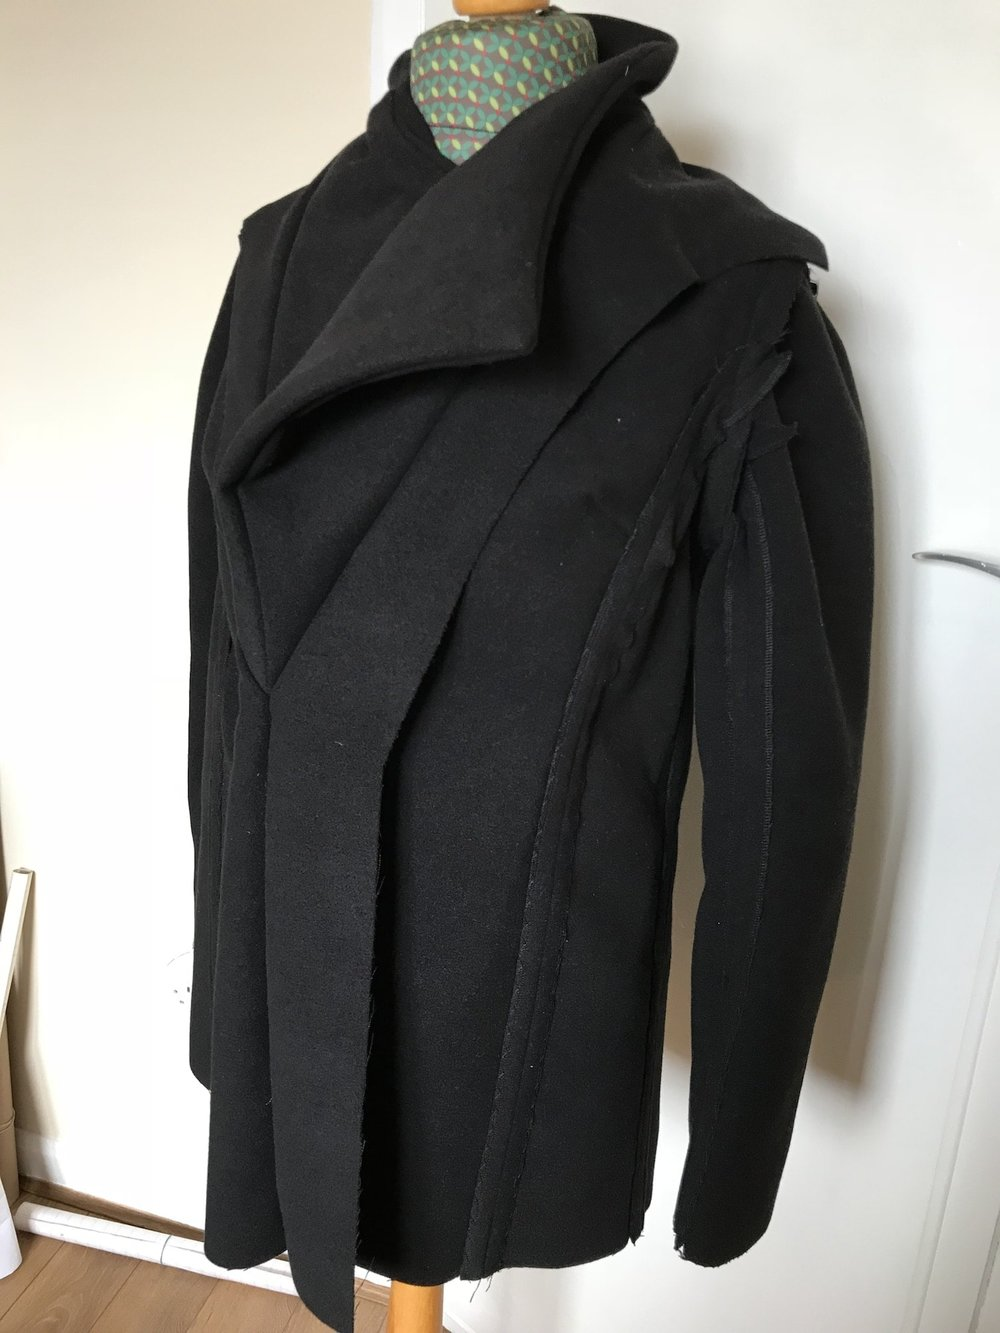 Self drafted coat inside front.jpg